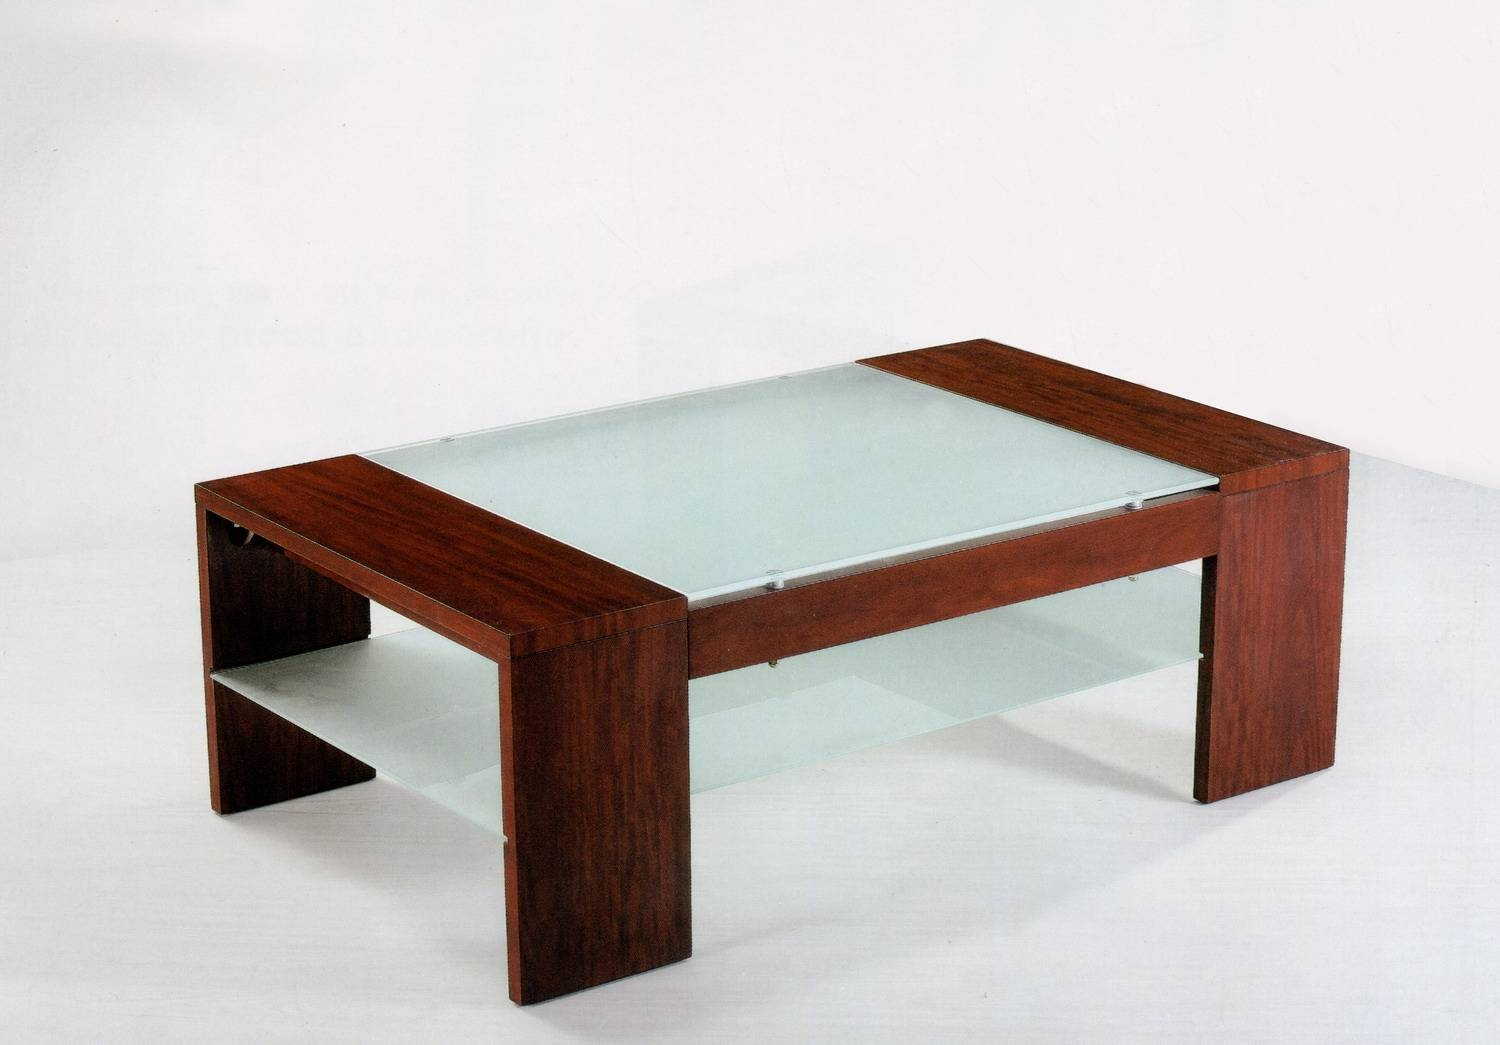 Glass And Wood Coffee Table Modern – Round Glass Coffee Table for Wood Modern Coffee Tables (Image 15 of 30)